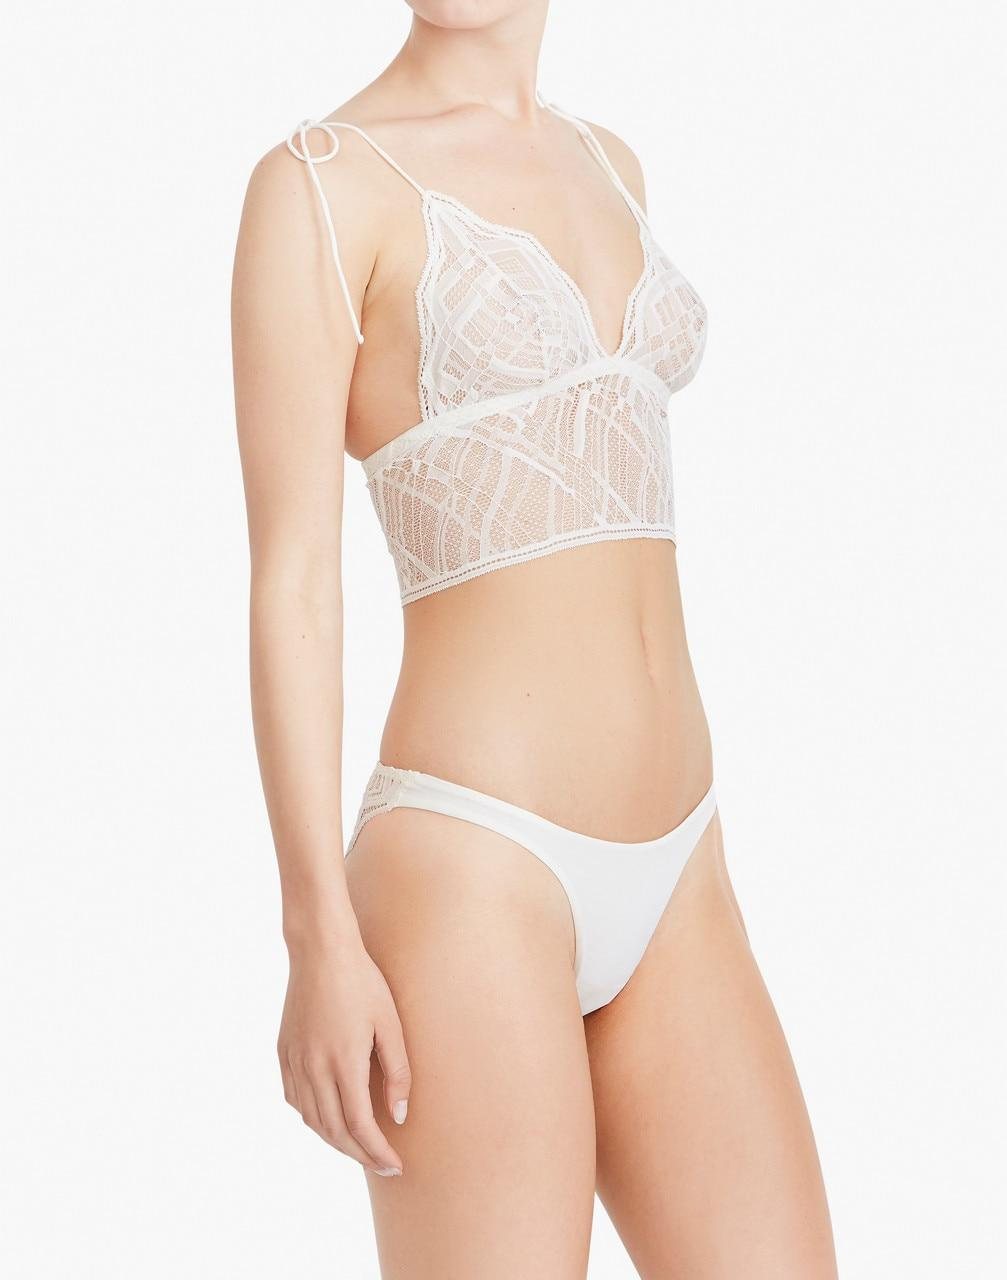 55a12cbdab8ed Madewell The Great Eros Lace Sonata Longline Bralette in White - Lyst